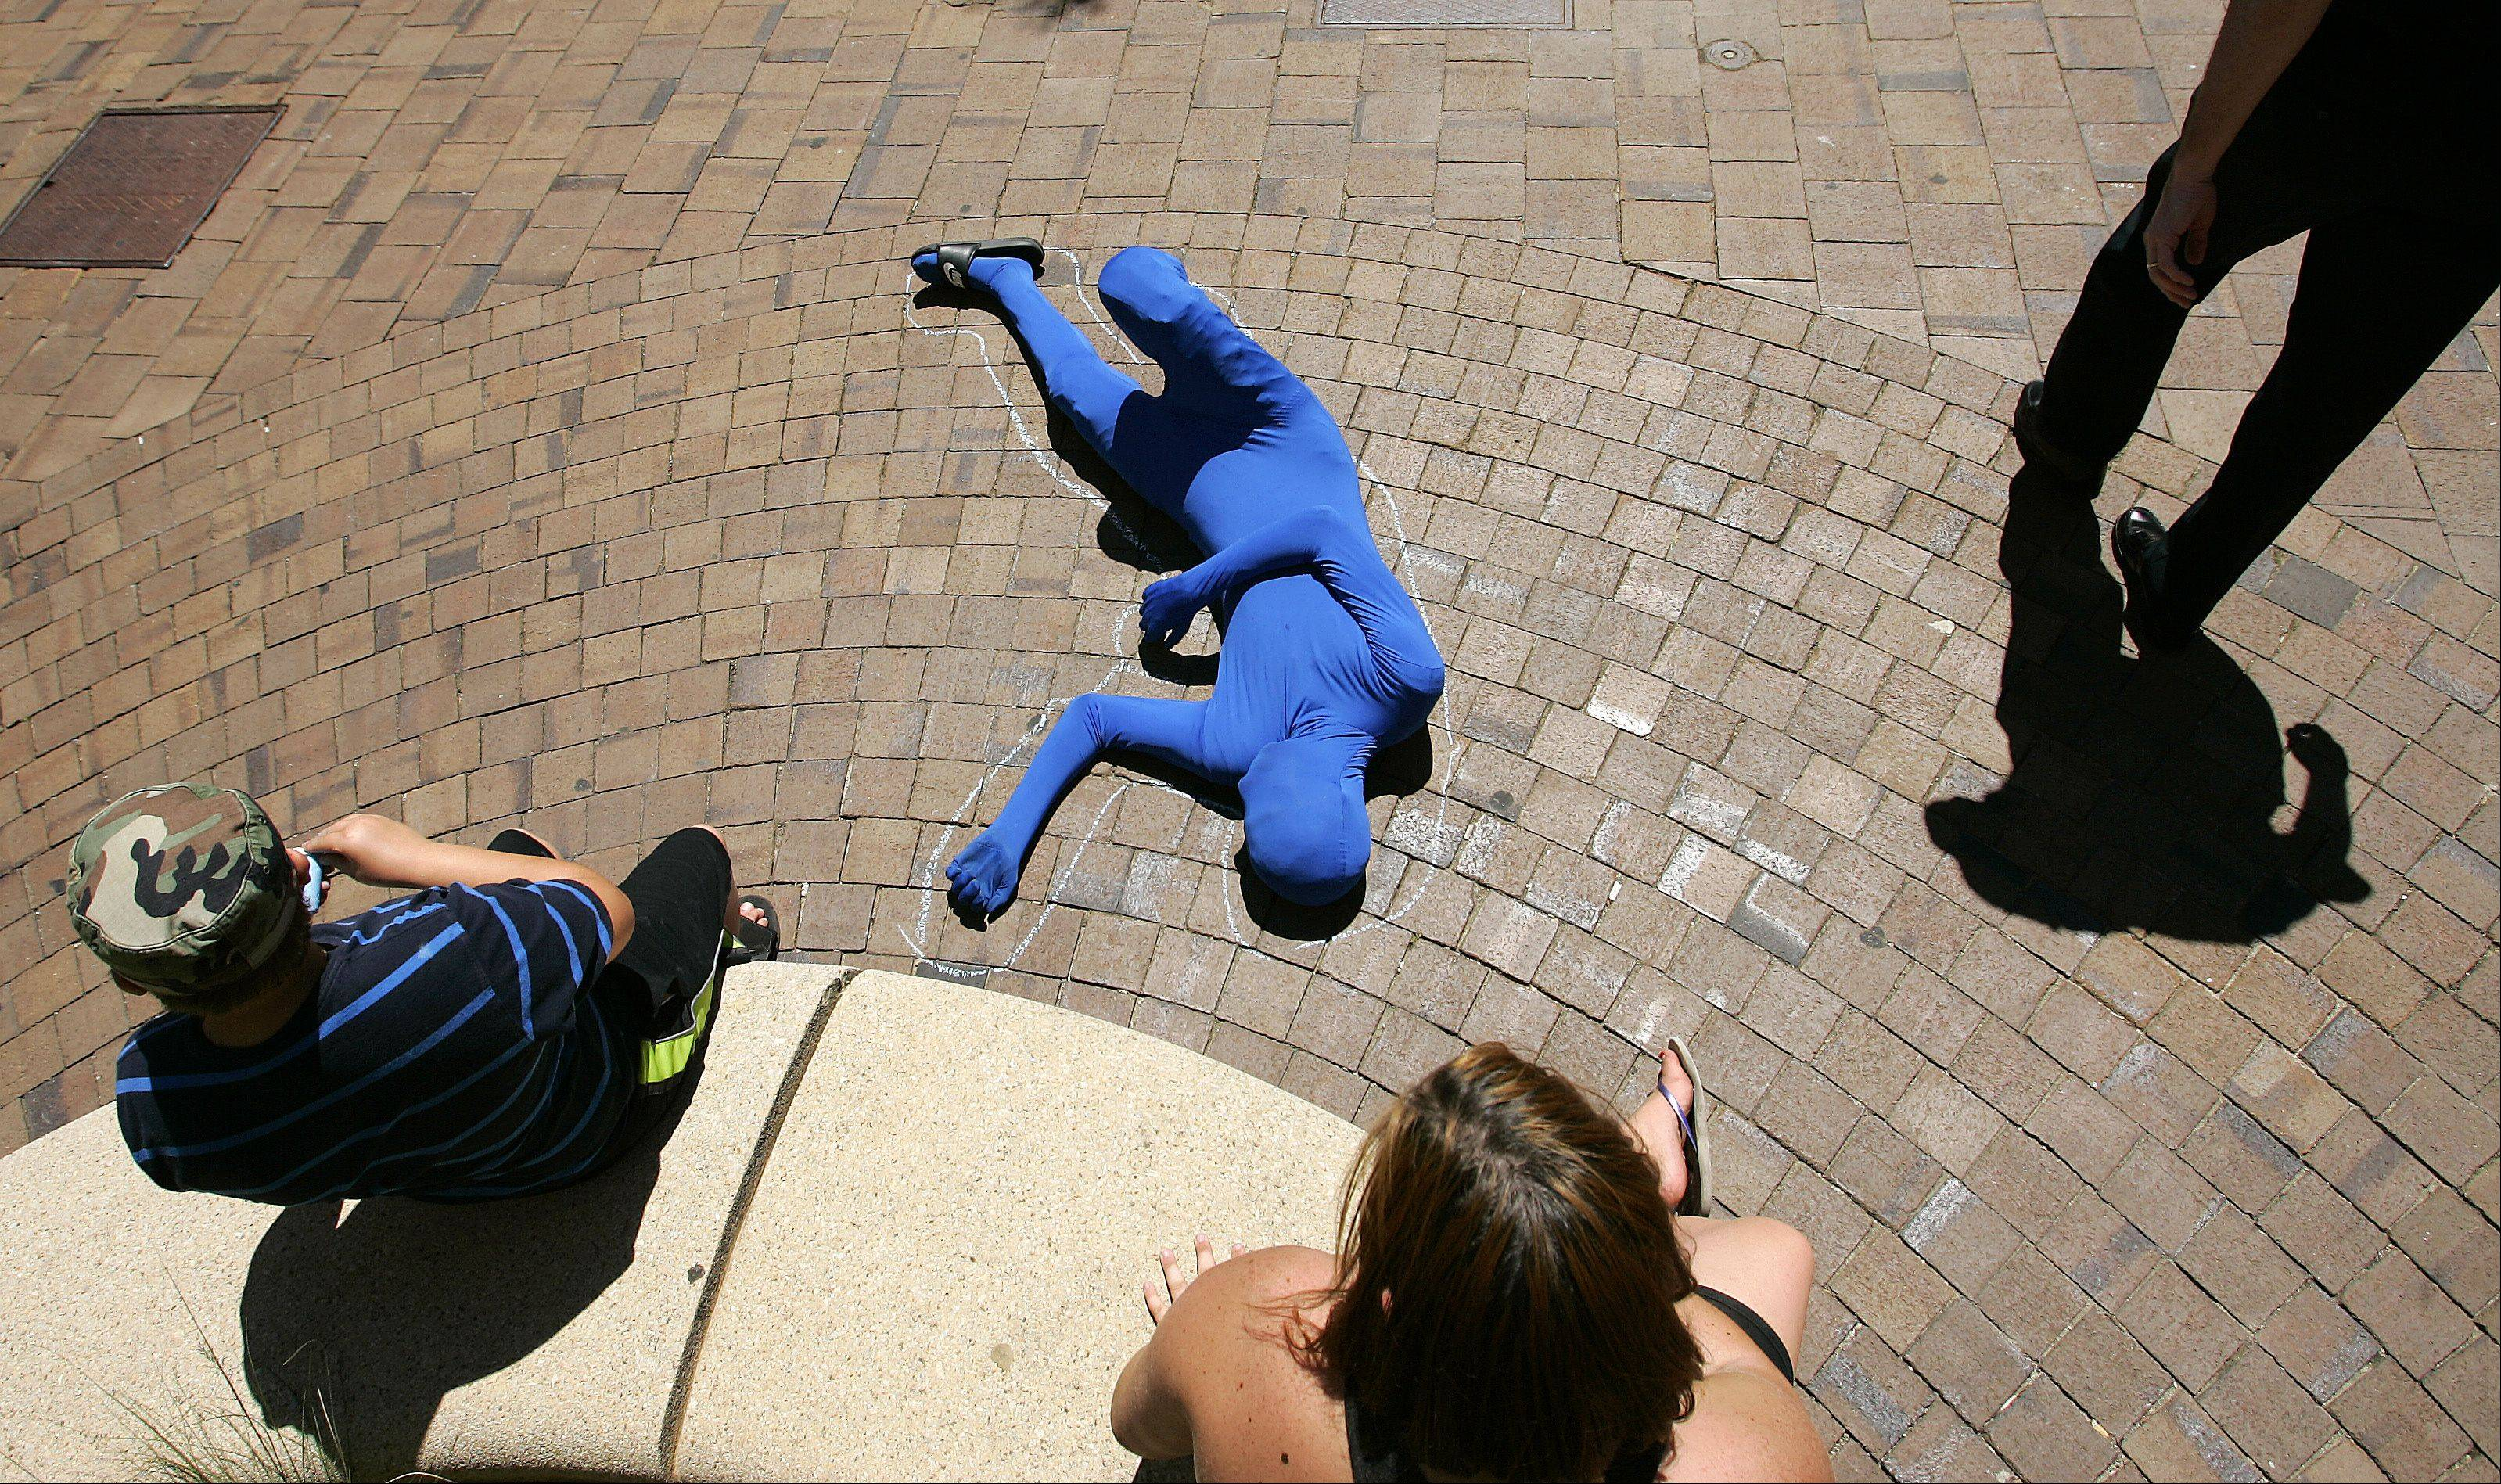 Fifteen-year-old Mason Keys has some fun with people as they pass by while wearing his blue suit Saturday during Art & Soul on the Fox in Elgin.